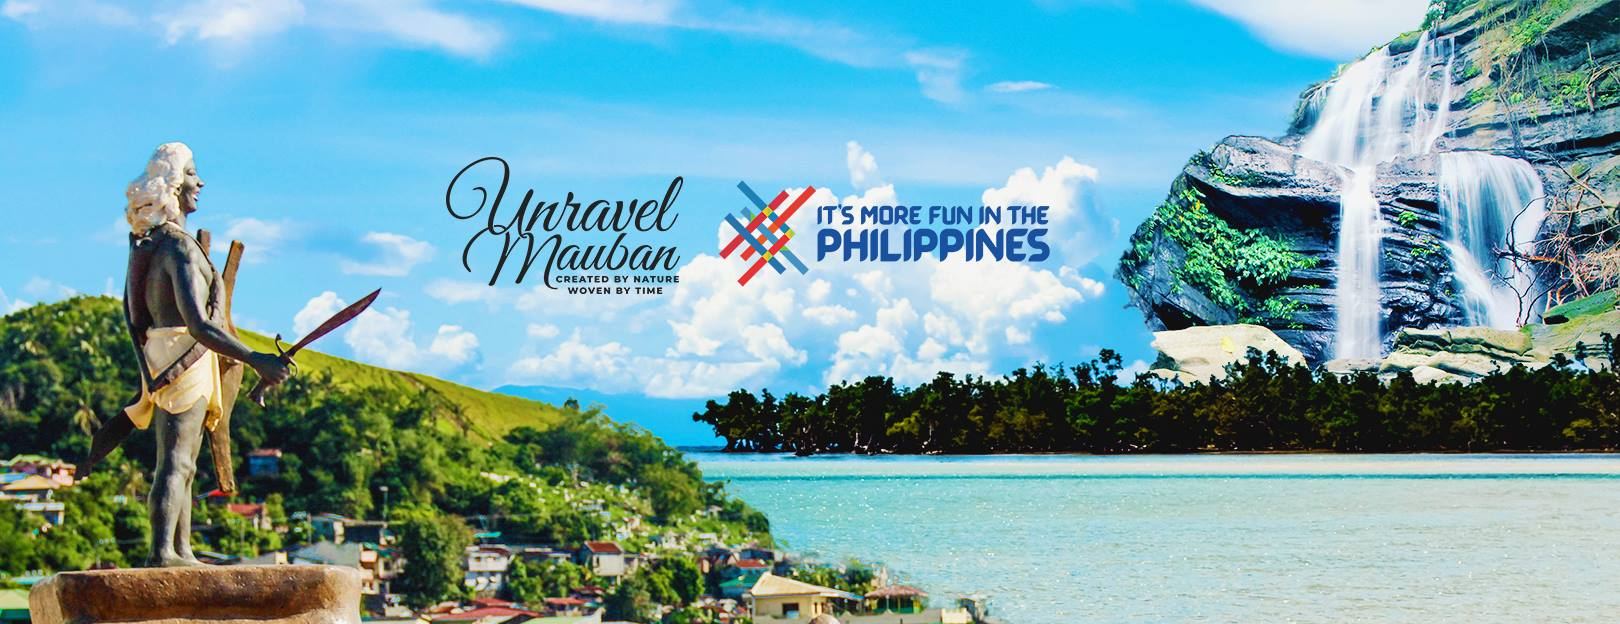 Mauban Quezon Travel and Tourism Poster